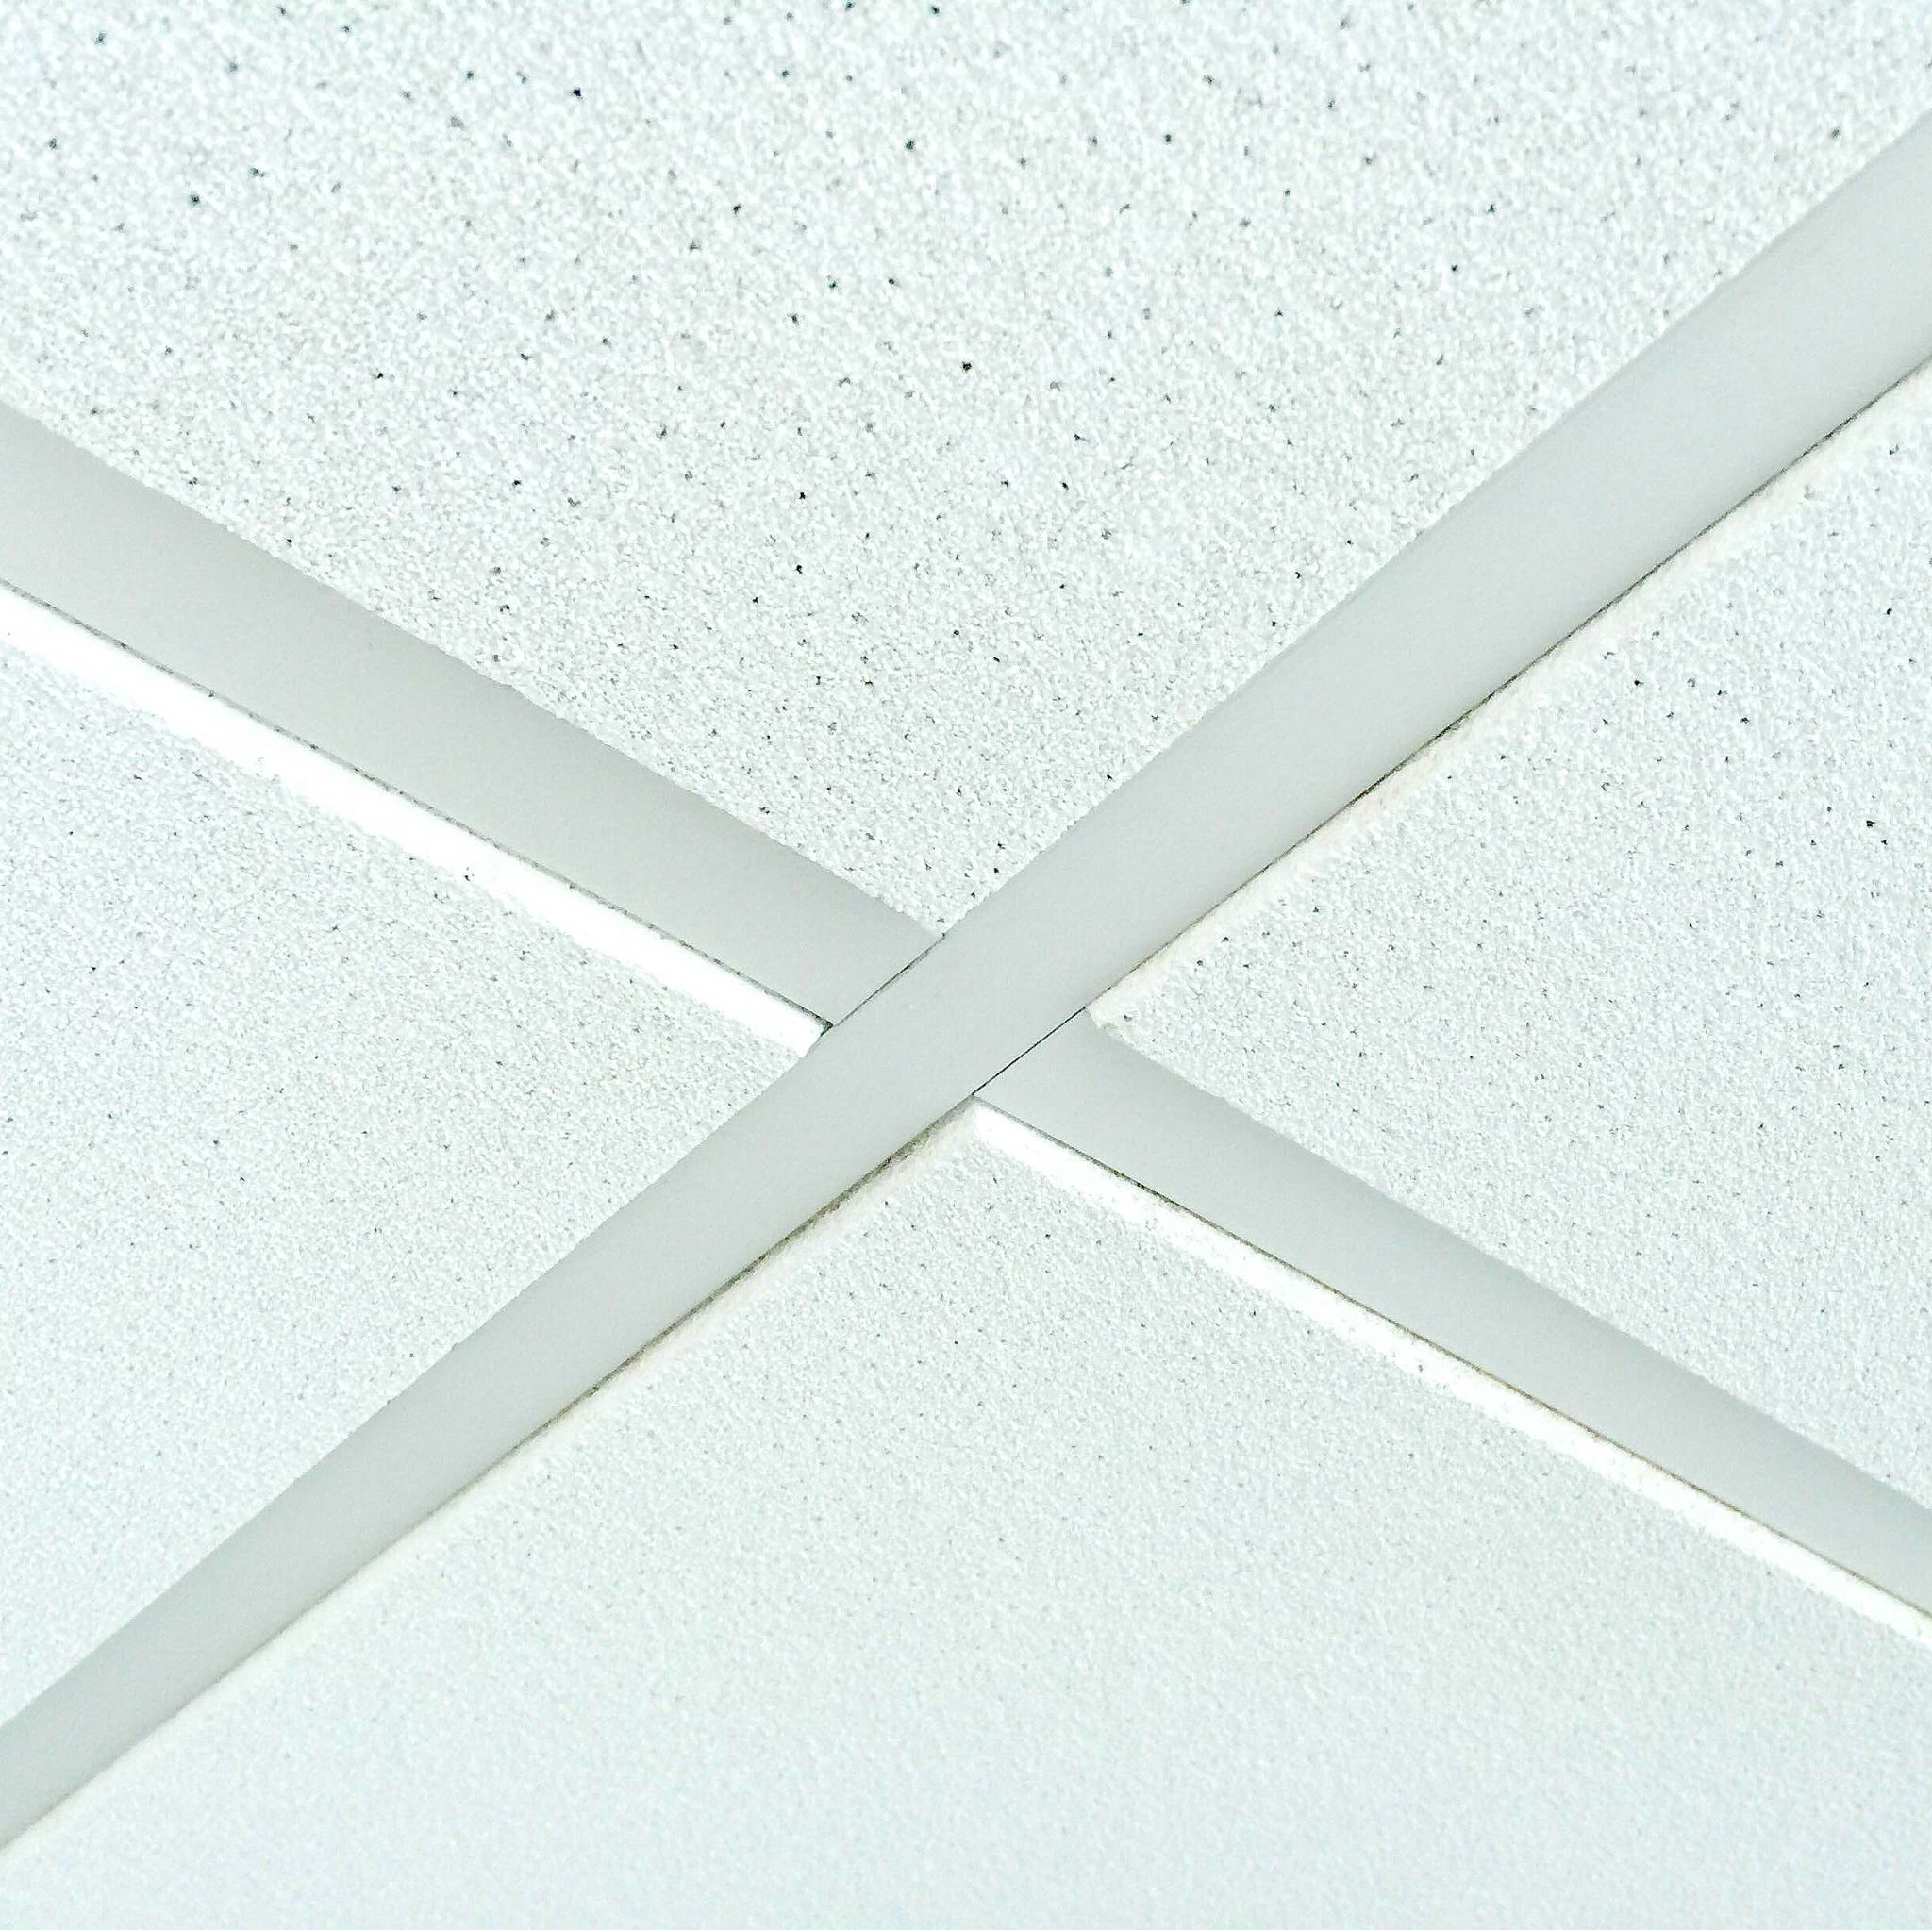 Sandtone Suspended Ceiling Tegular Tiles 595mm X 595mm